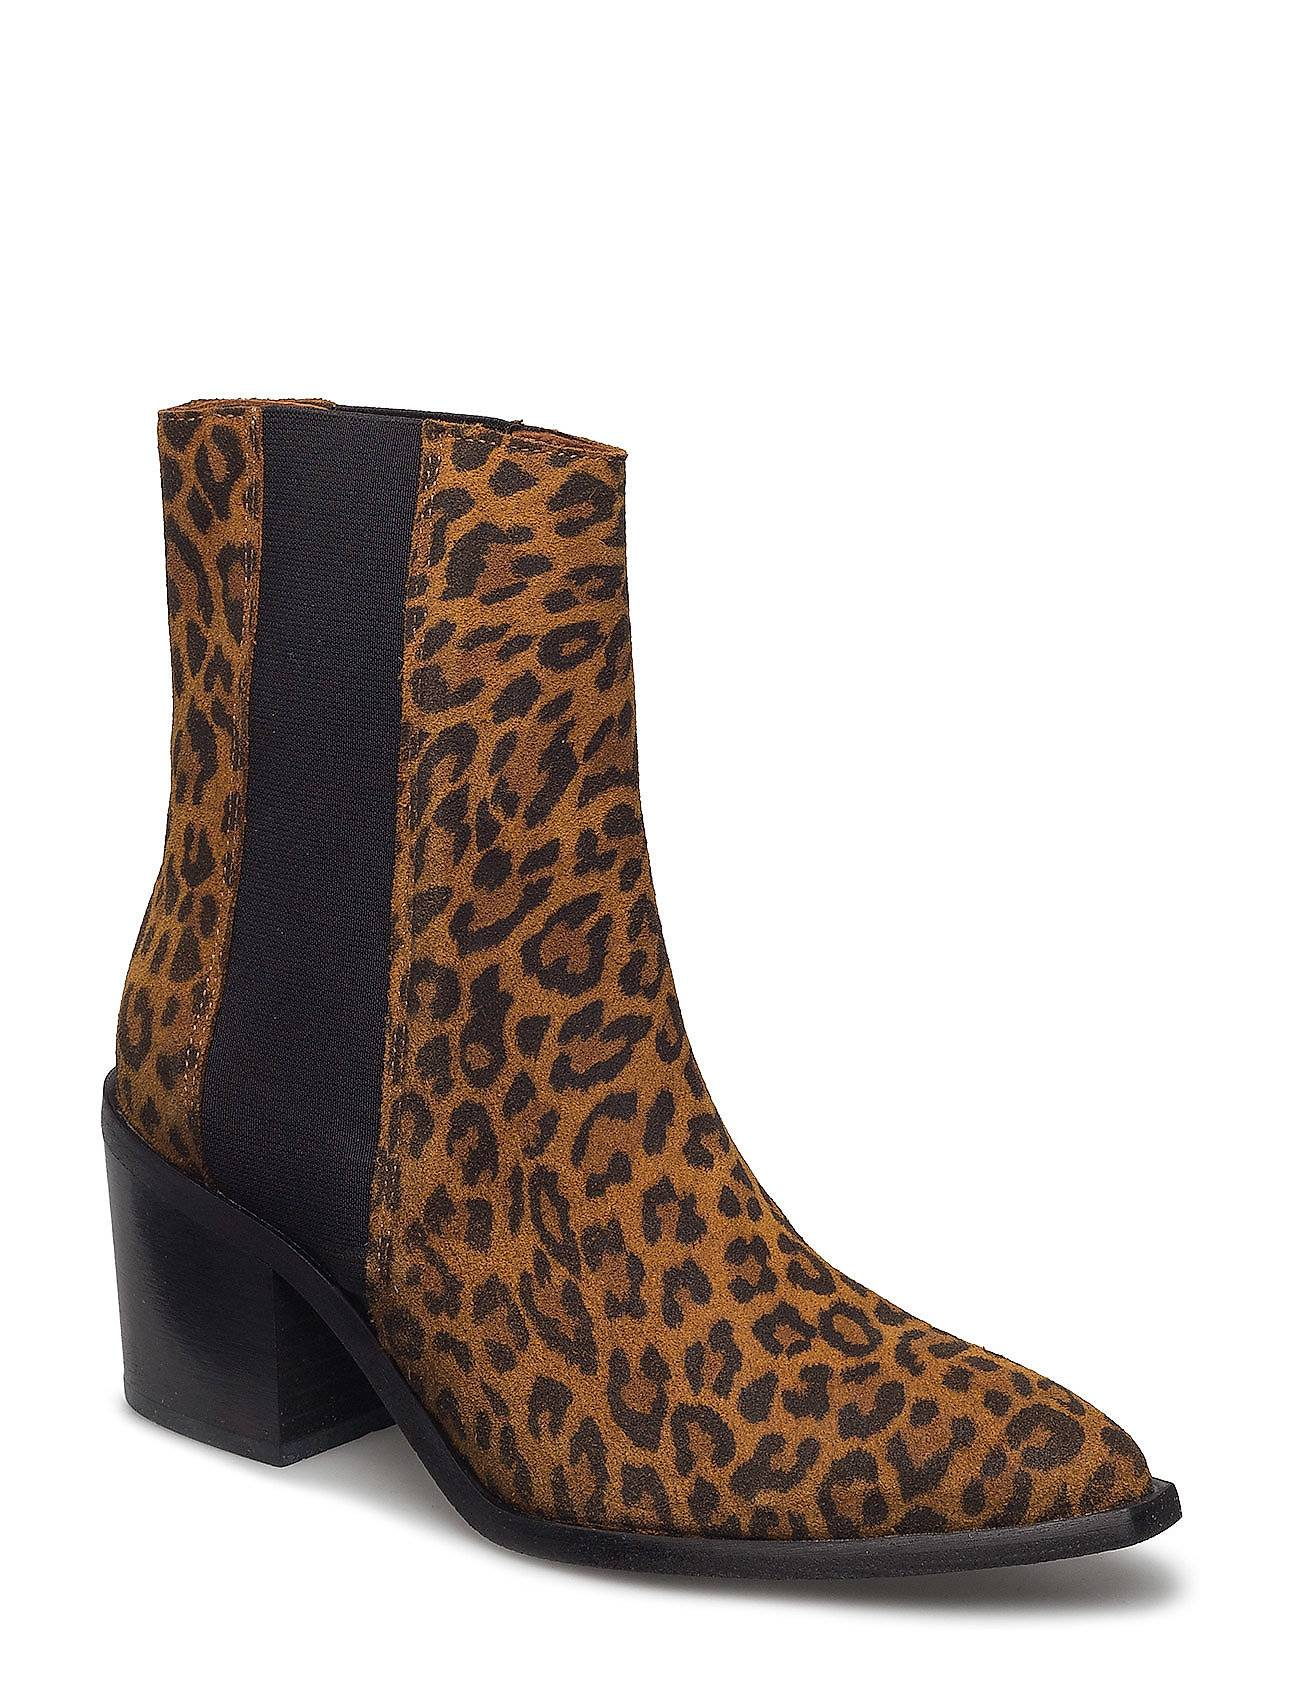 Selected Femme Sfelena High Shafted Leopard Boot